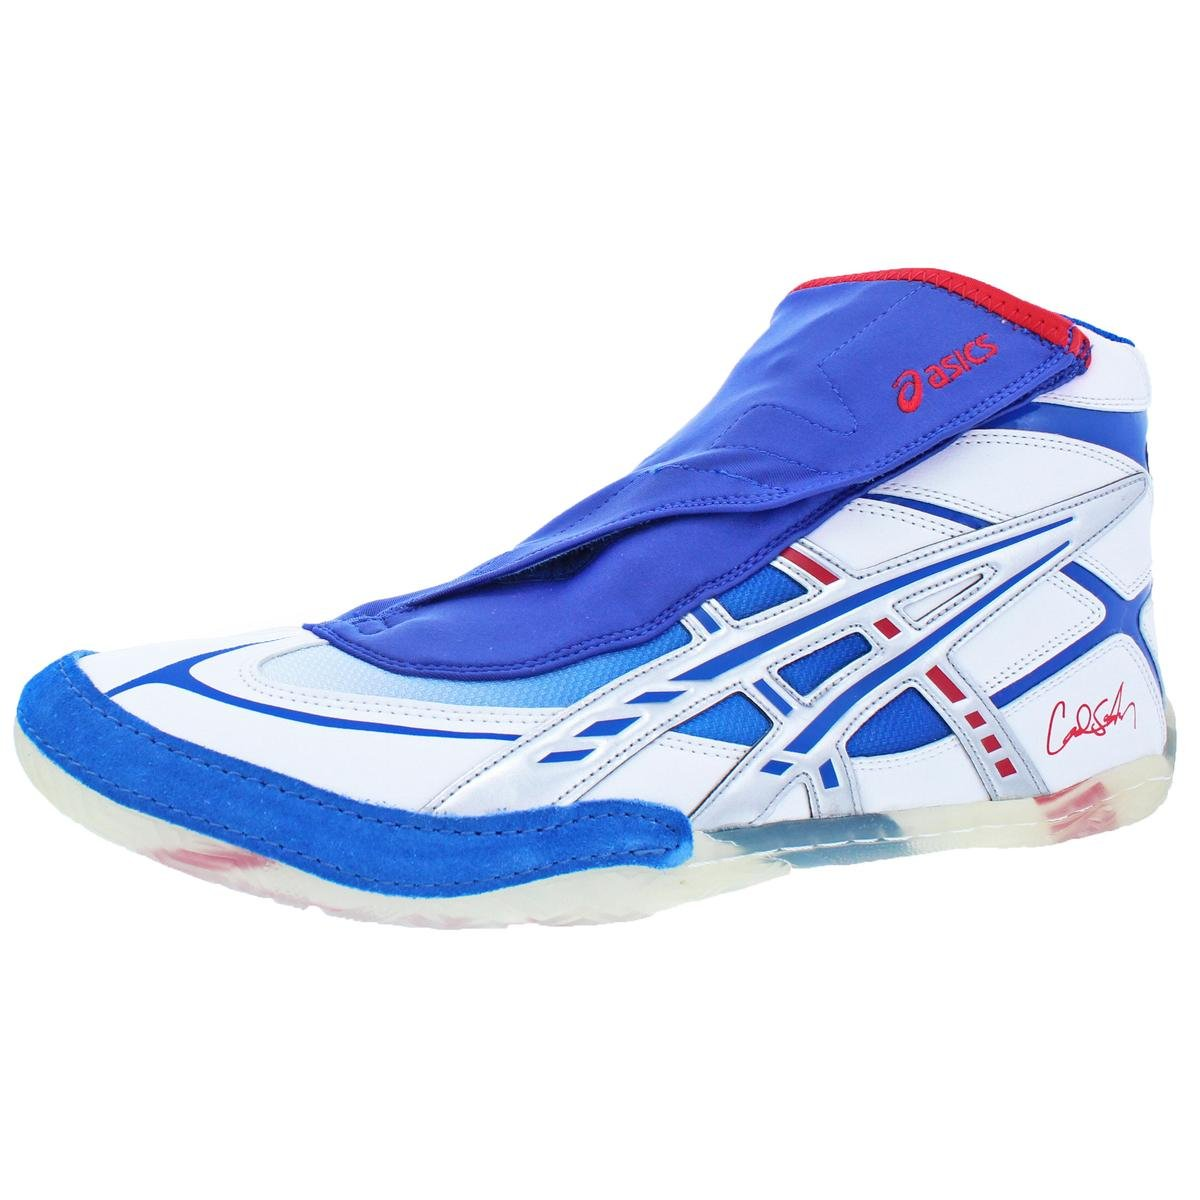 ASICS Men's Cael Wrestling Shoe, White/Blue/Red, 15 M US